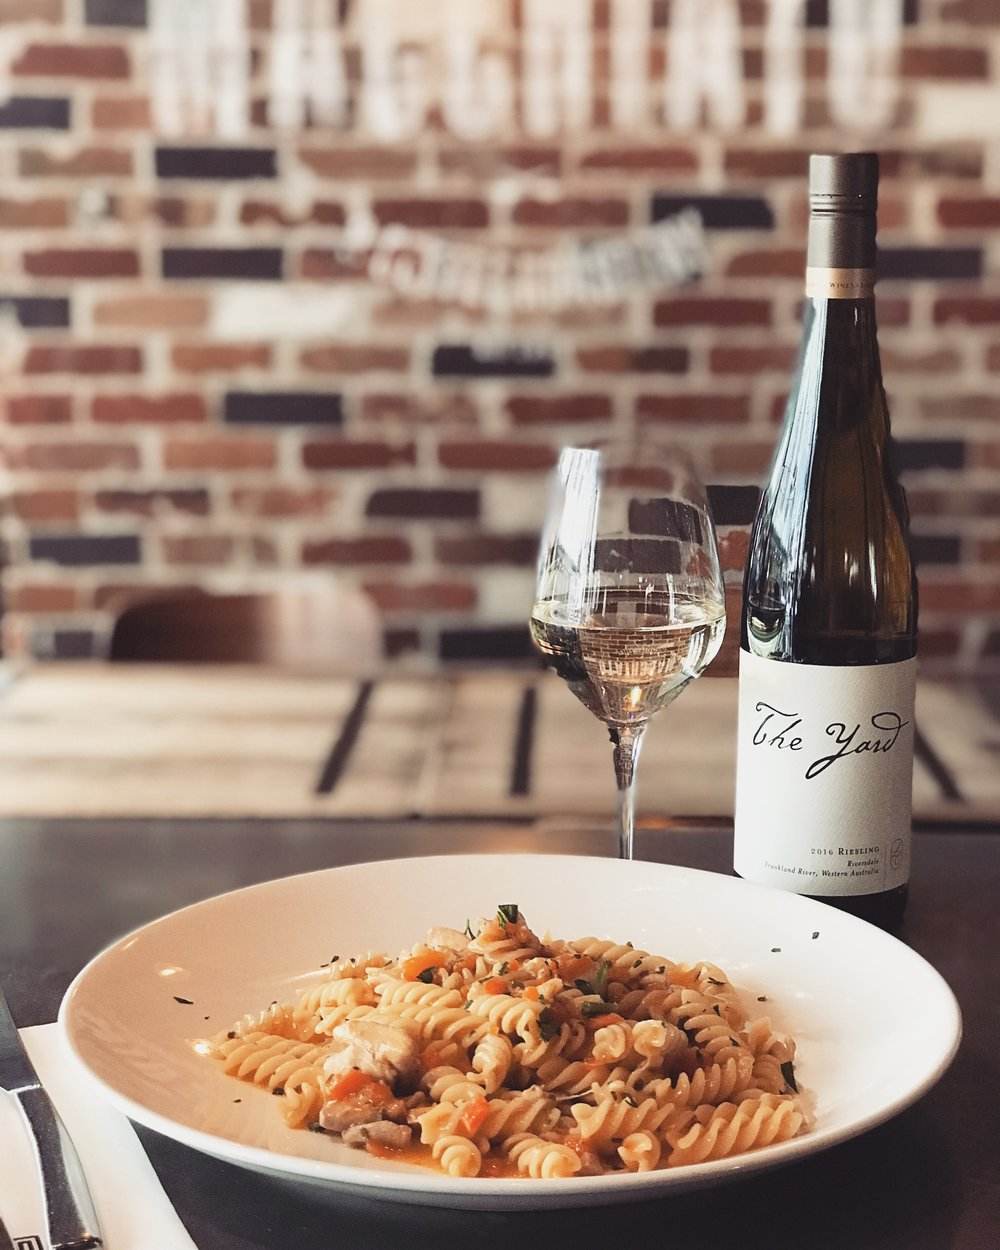 6-12 December - Fusilli alla Genovese - slow cooked chicken thigh Genovese white ragu' with notes of carrot, celery and onion.Best accompanied by The Yard Riesling, Frankland River (WA).